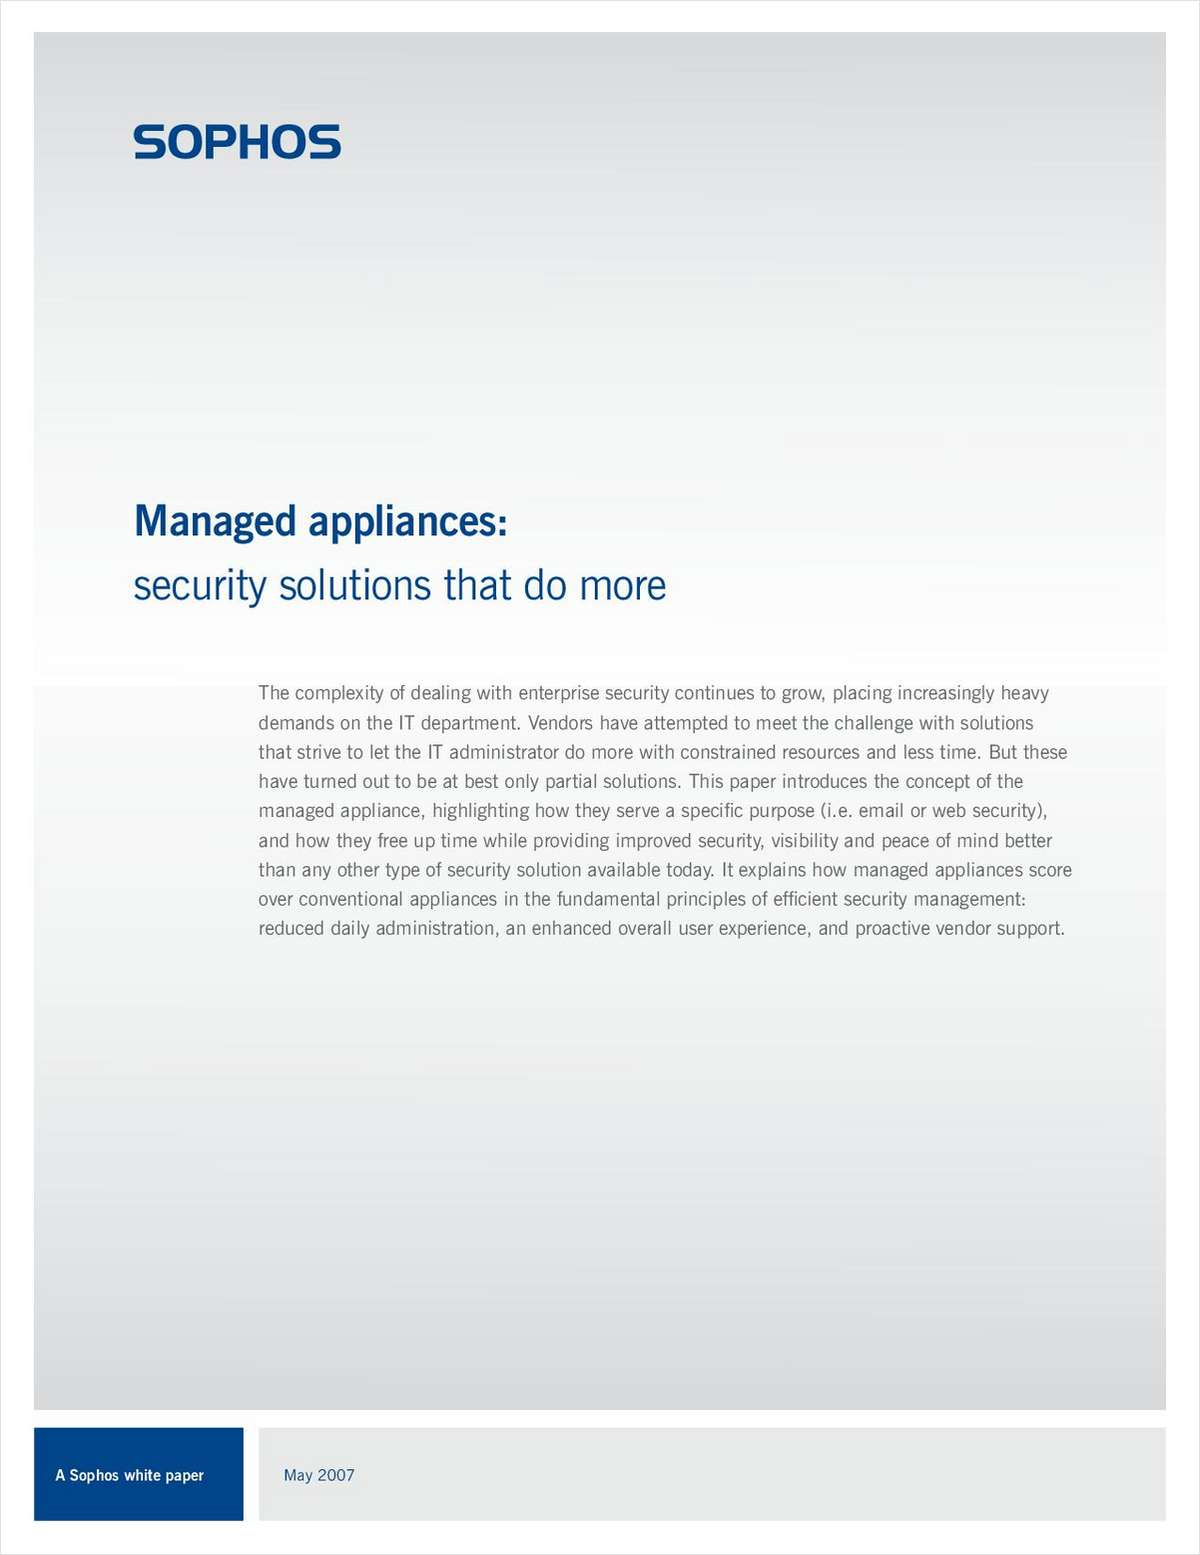 Managed Appliances: Security Solutions That Do More